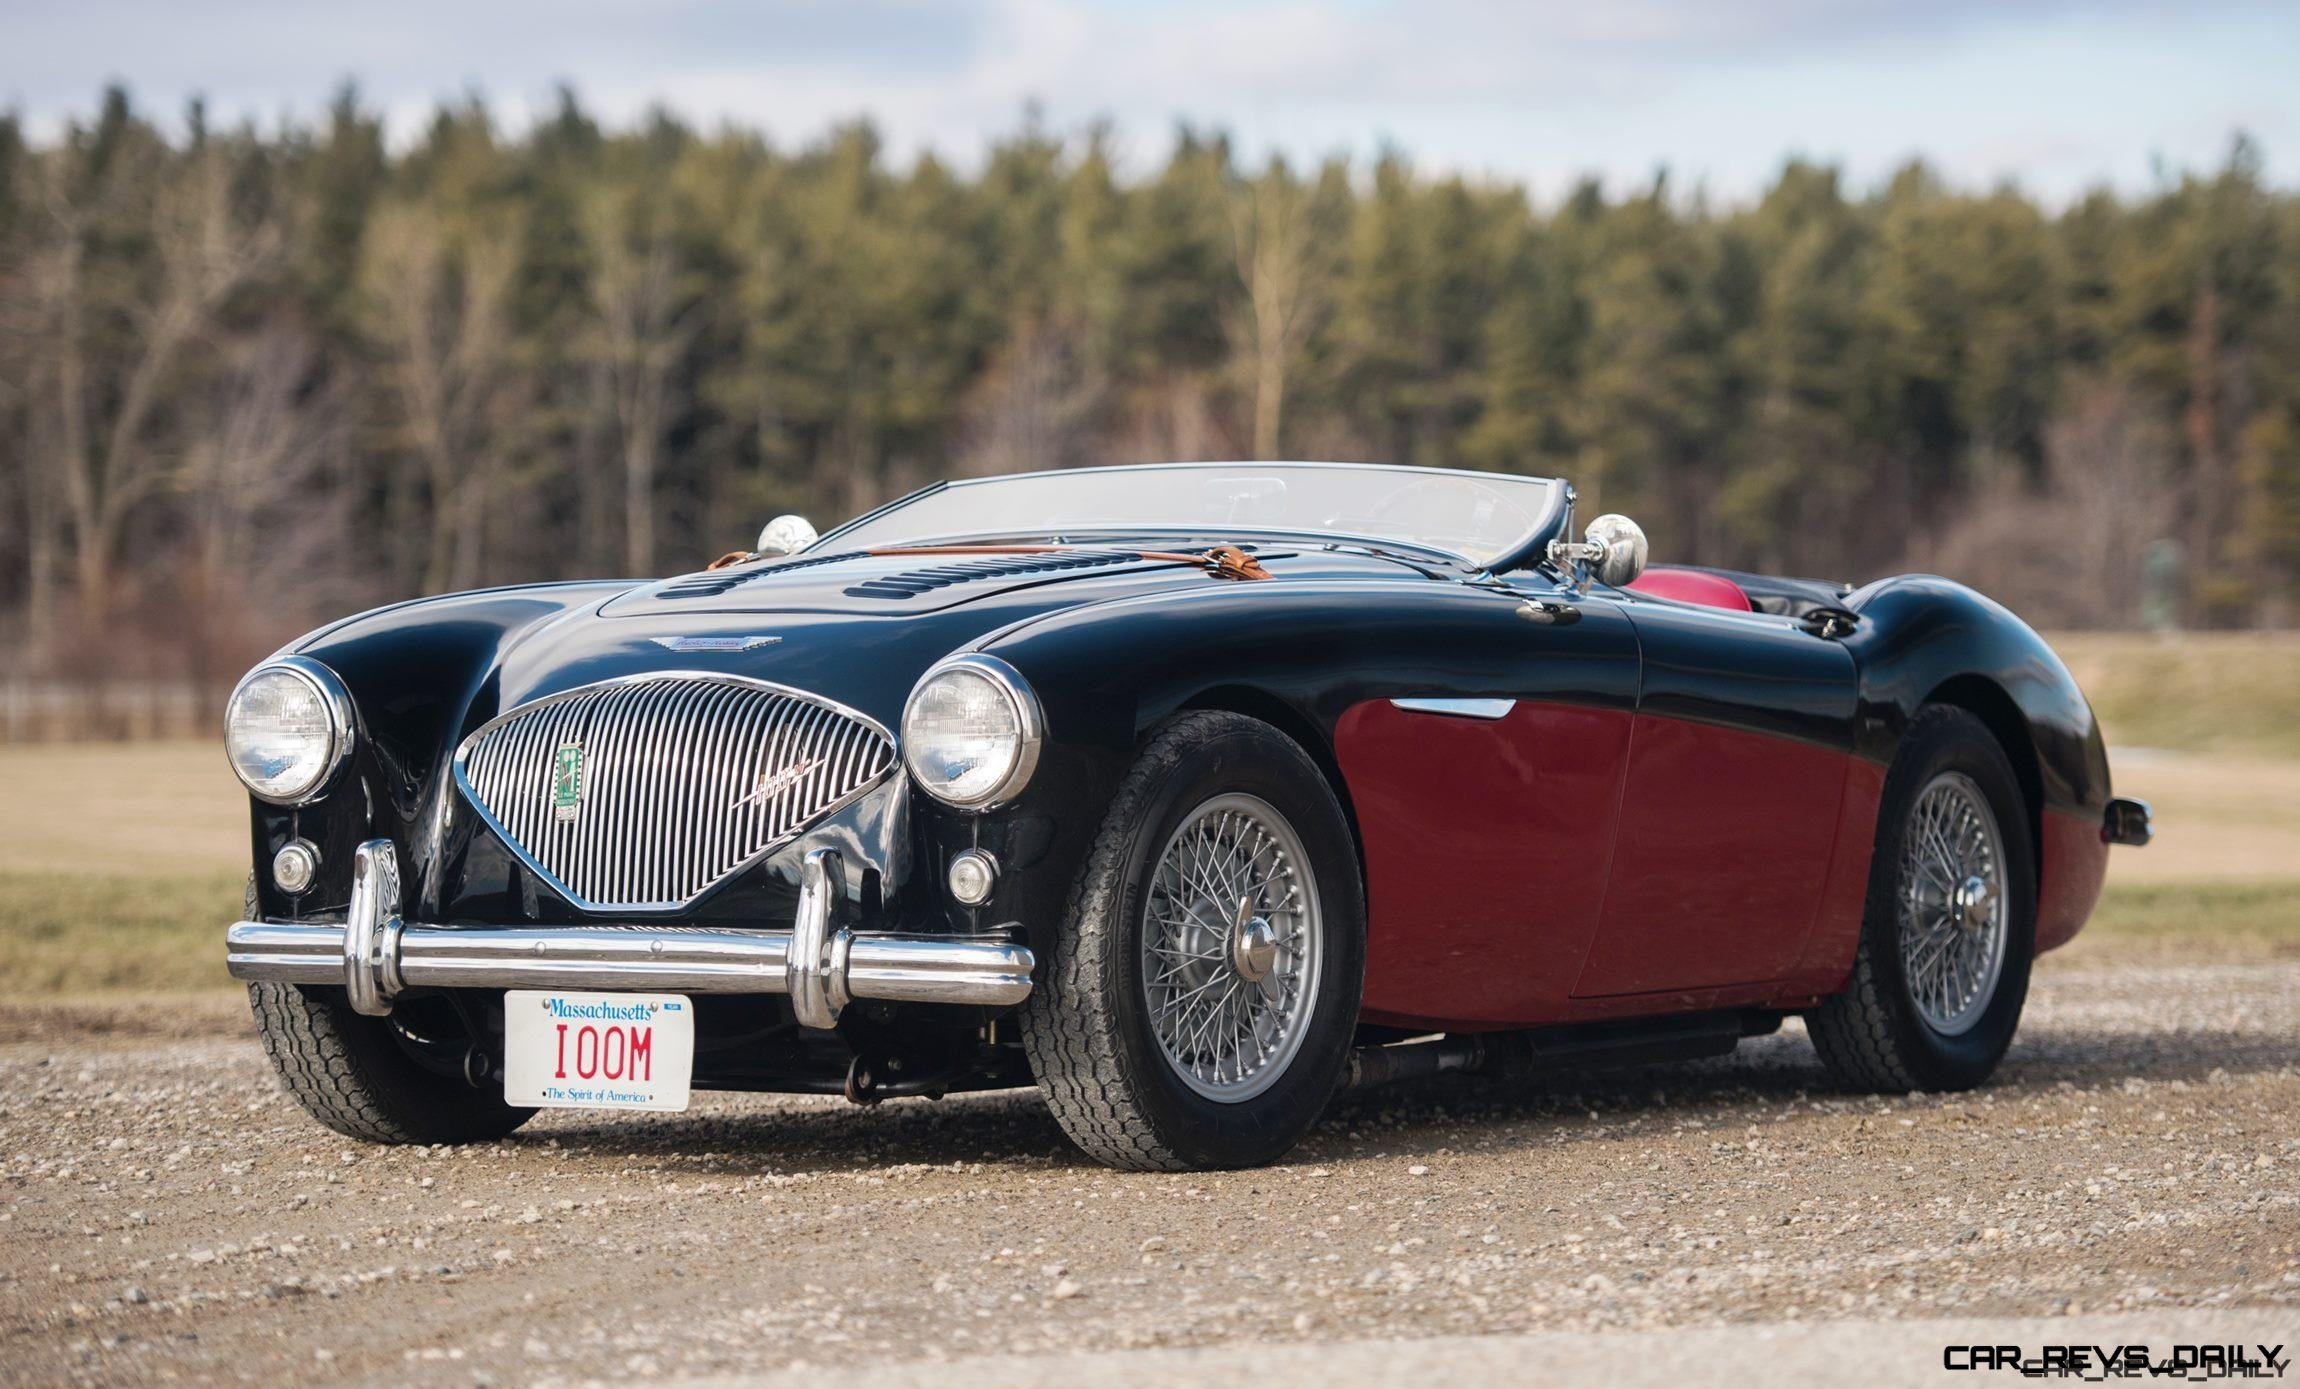 1956 Austin-Healey 100M Le Mans Speedster in Left Hand Drive 1